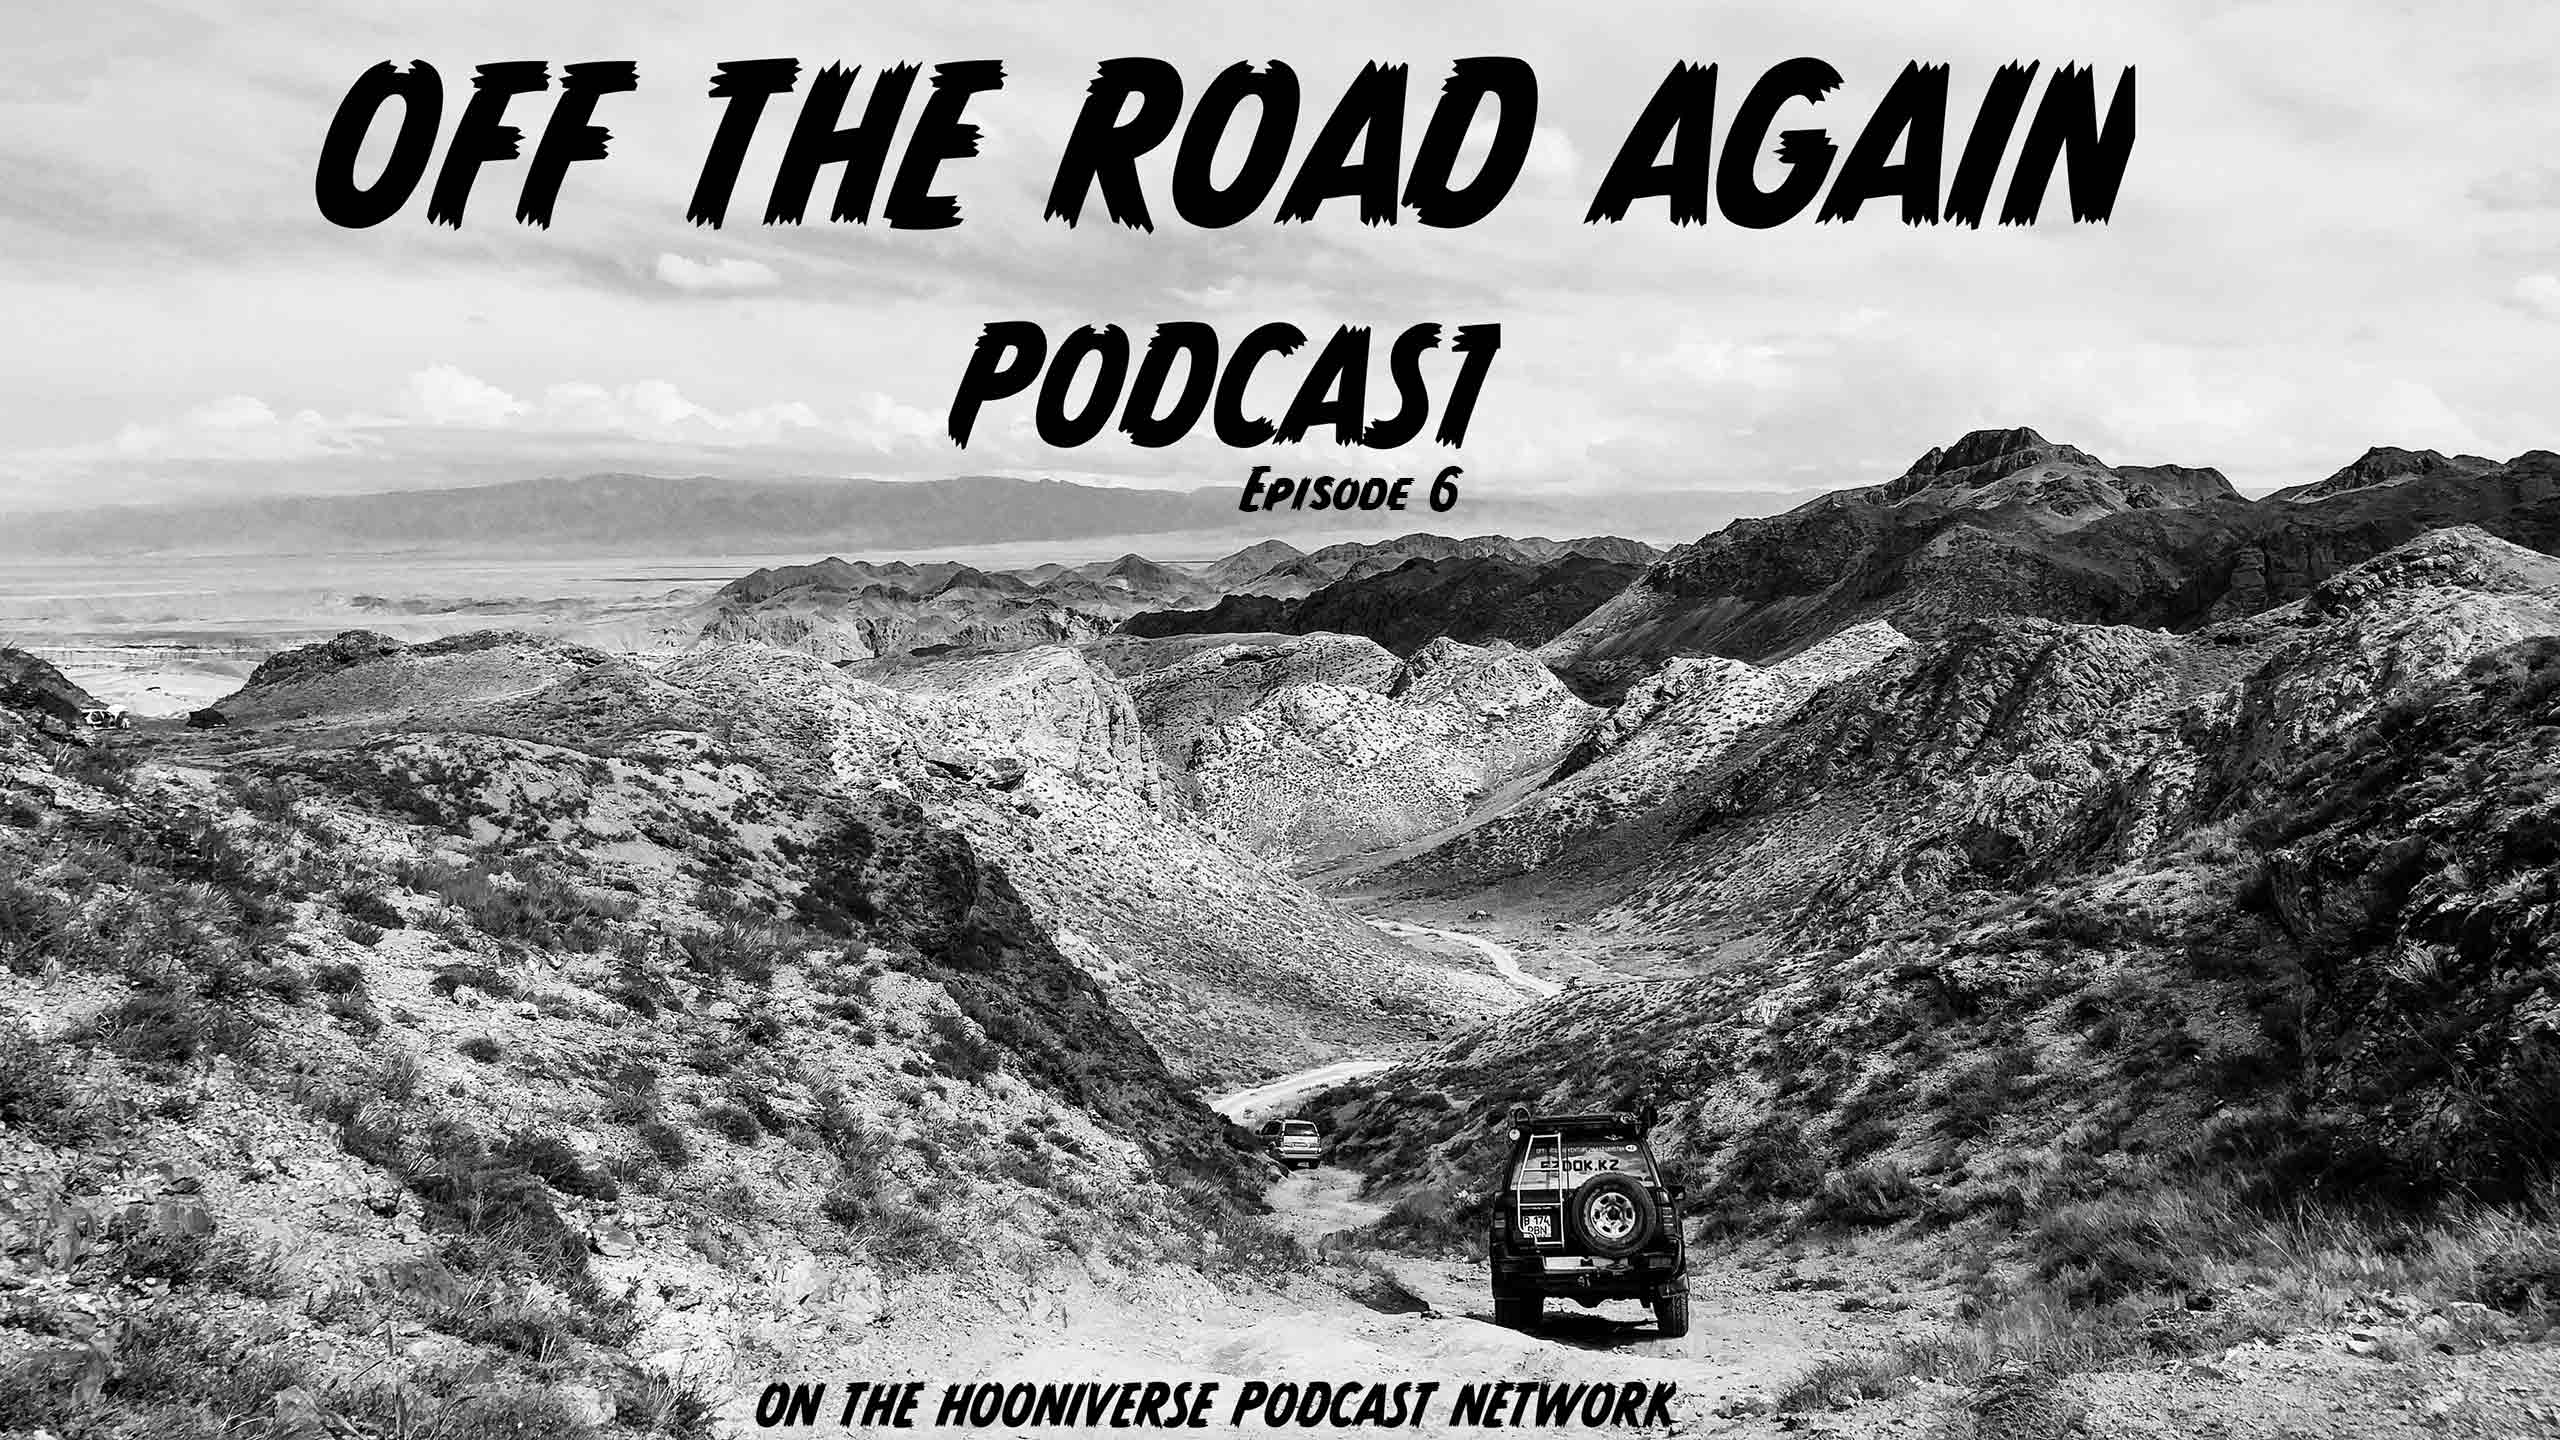 Off the Road Again Podcast Episode 6